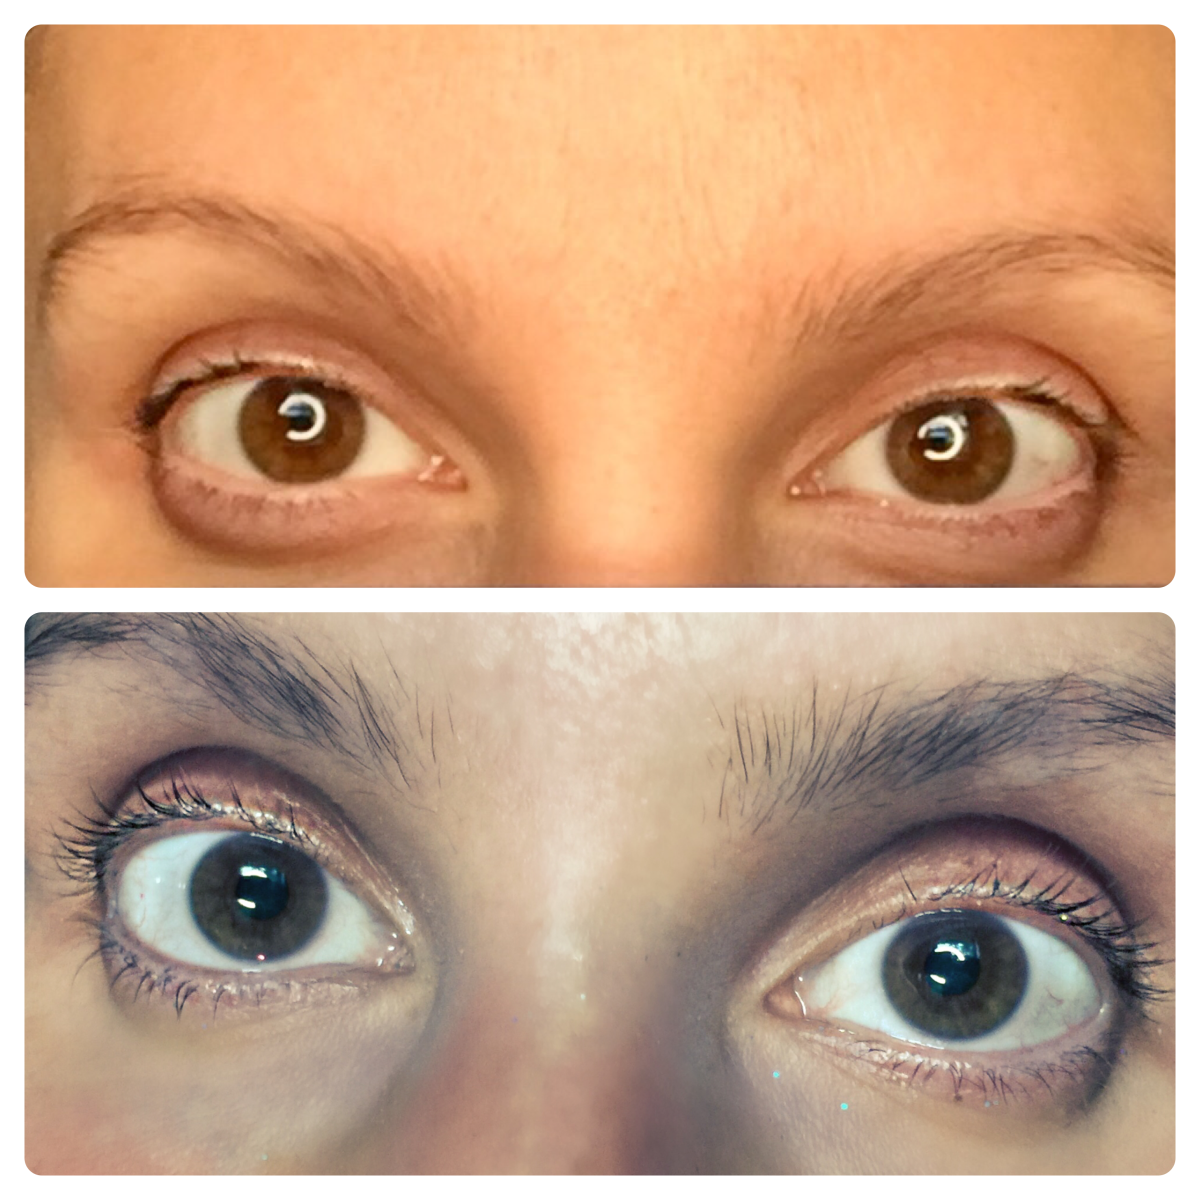 Top picture is before and bottom is after about 5 weeks. I am also using their other product, Rapidlash. As you can see it works too (I wrote a separate review for that.)